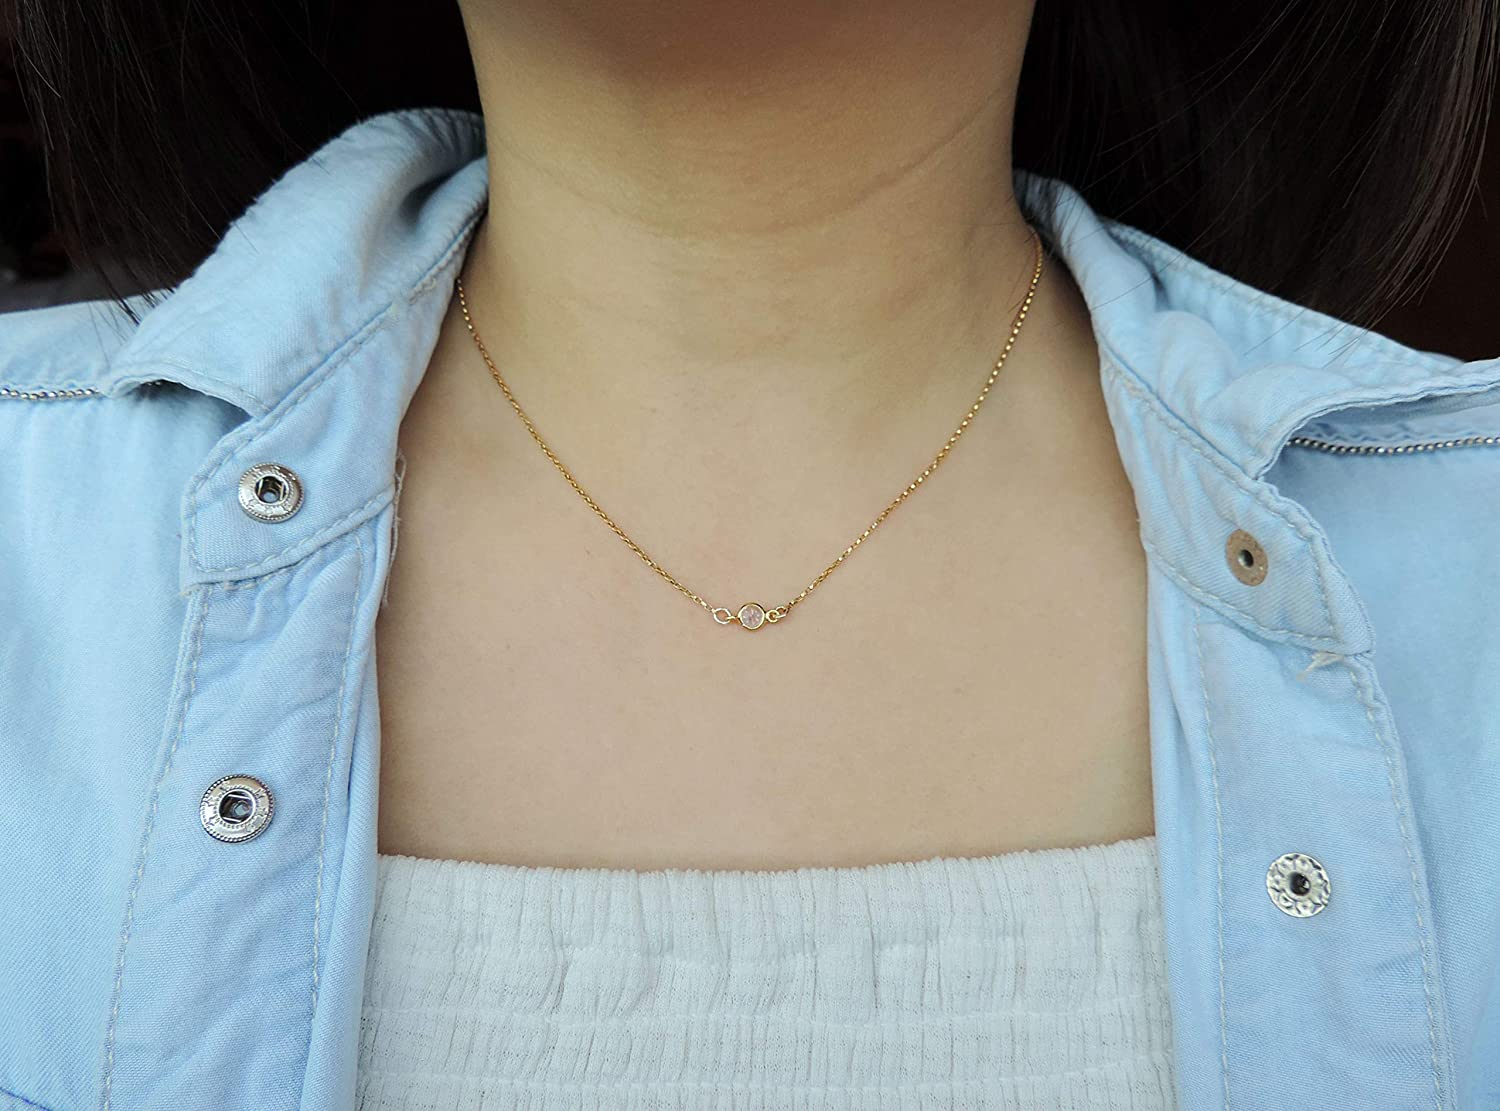 Tiny Diamond CZ Round Connector Necklace Minimalist Necklace Gift Small Dainty Diamond CZ Round Necklace,Sterling Silver//Gold//Rose Gold